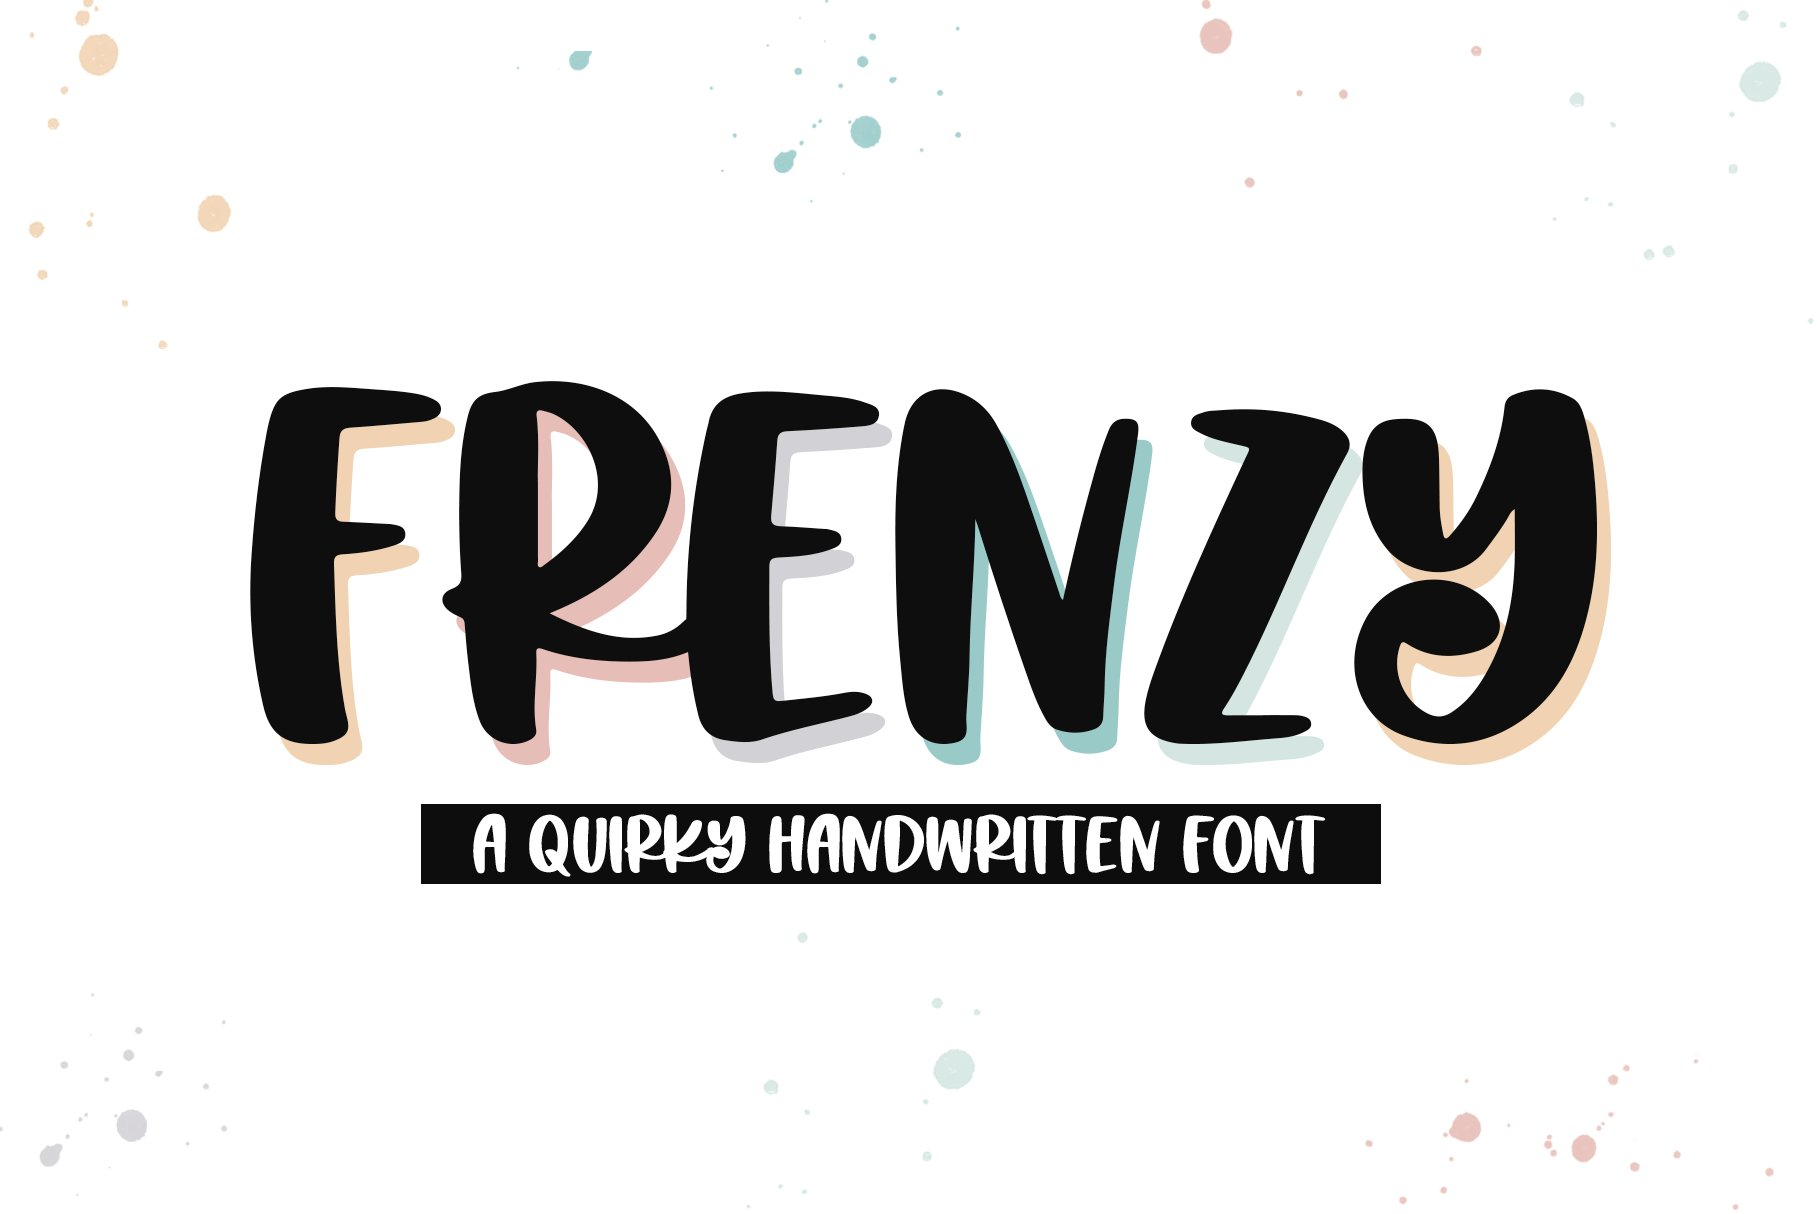 Frenzy - A Quirky Handwritten Font example image 1